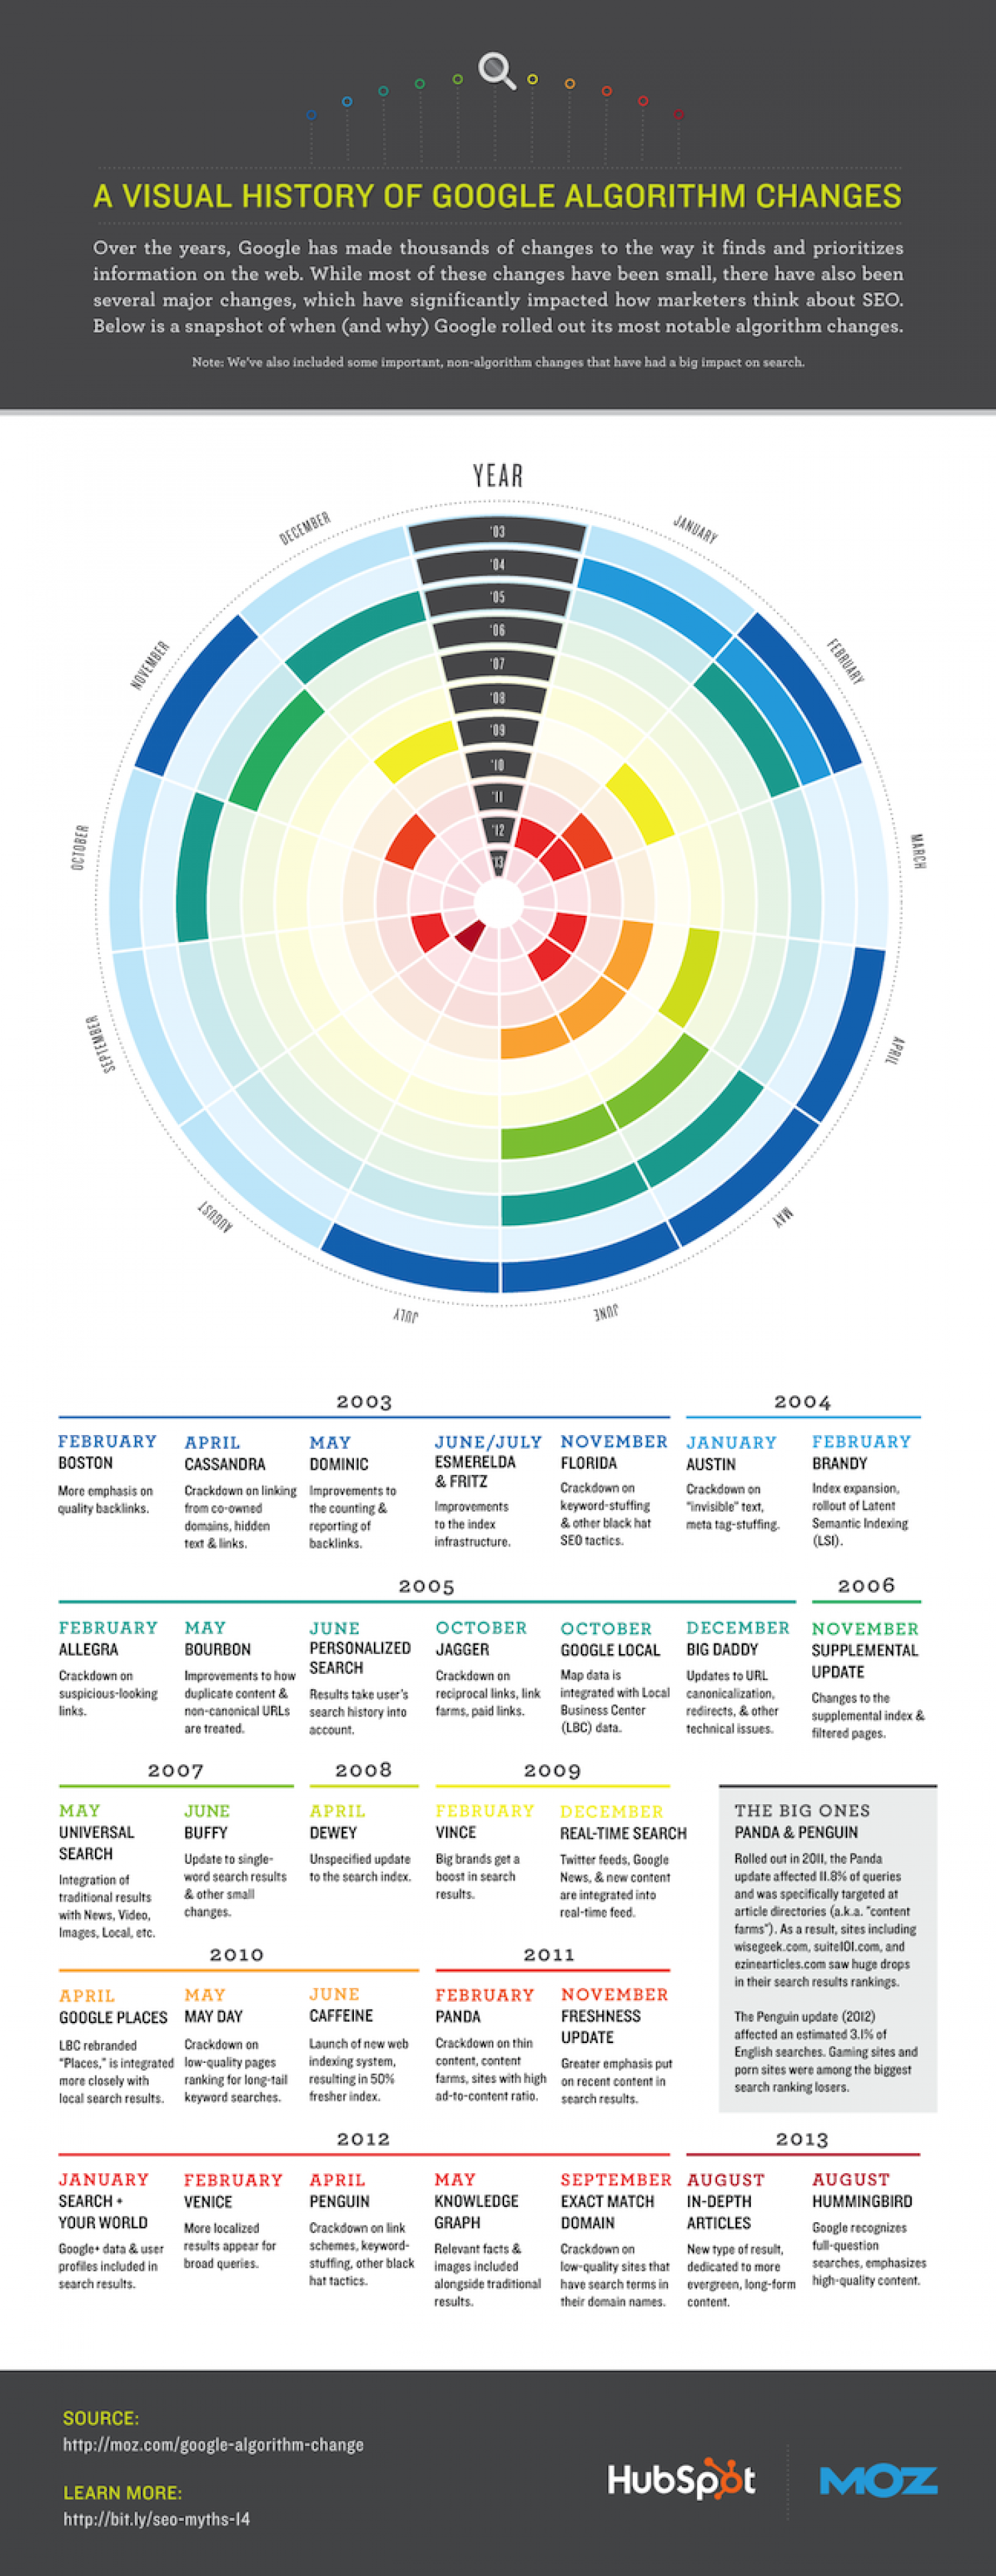 A Visual History of Google Algorithm Changes Infographic